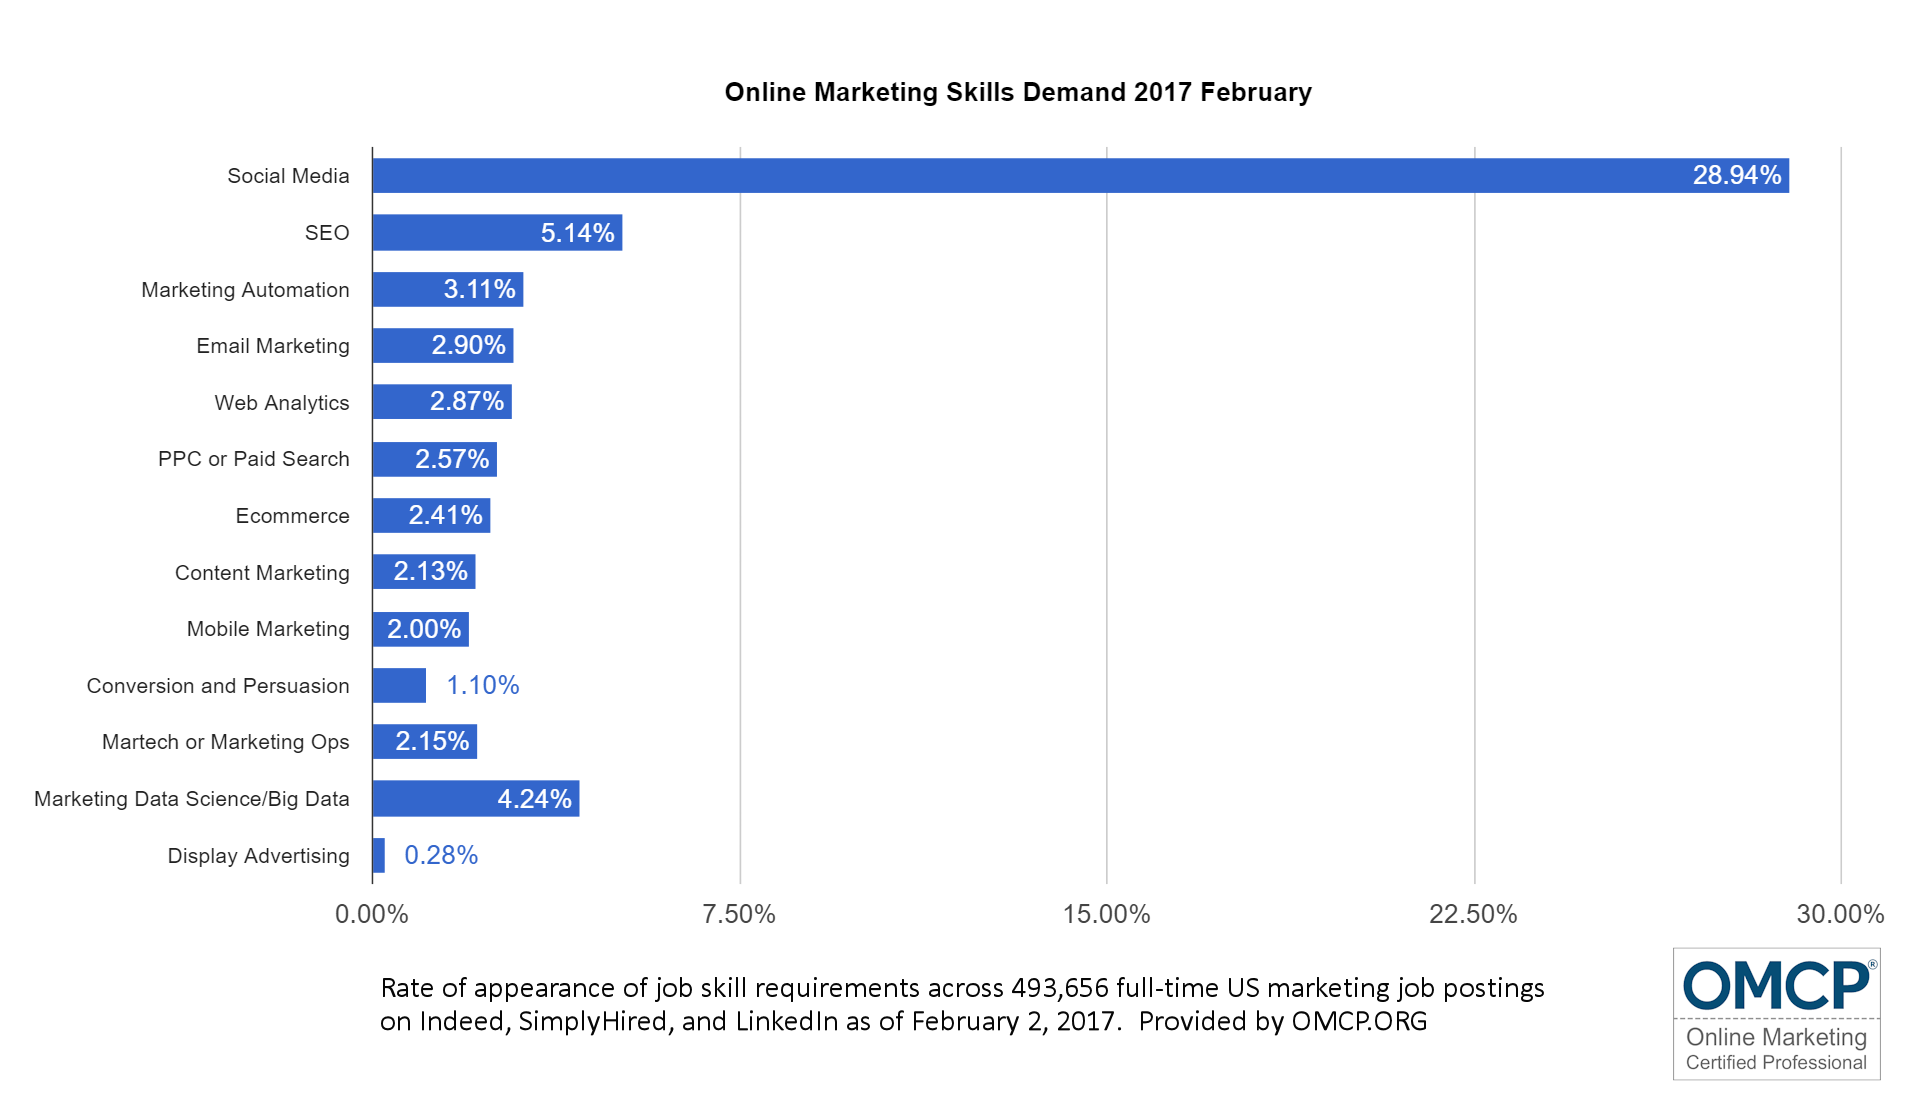 online marketing job skills in demand 2017 omcp online marketing skills demand 2017